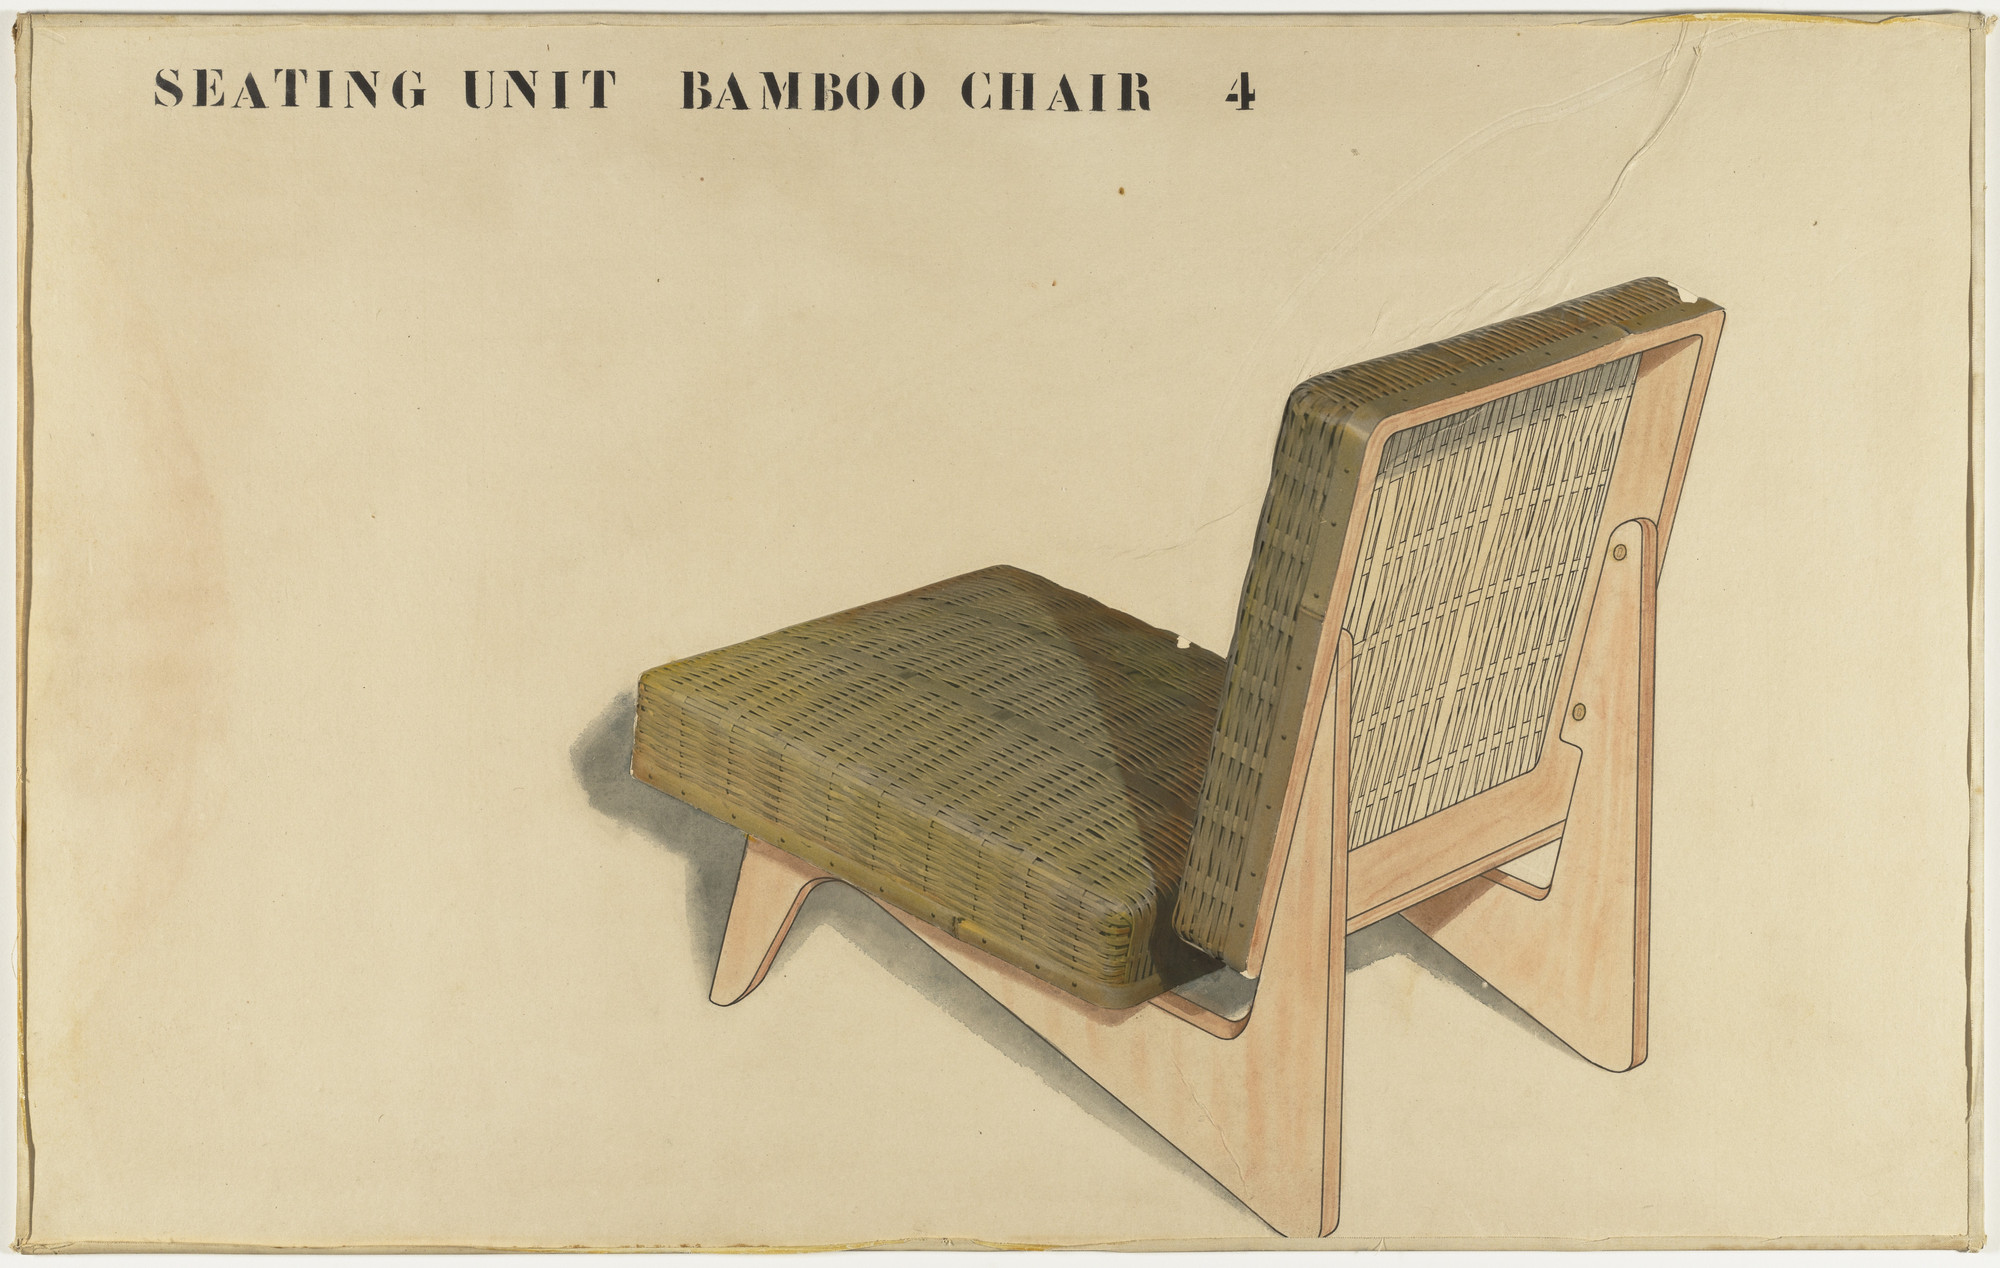 Junzo Sakakura. Entry Panel for MoMA International Competition for Low-Cost Furniture Design (Bamboo Chair). c.1950